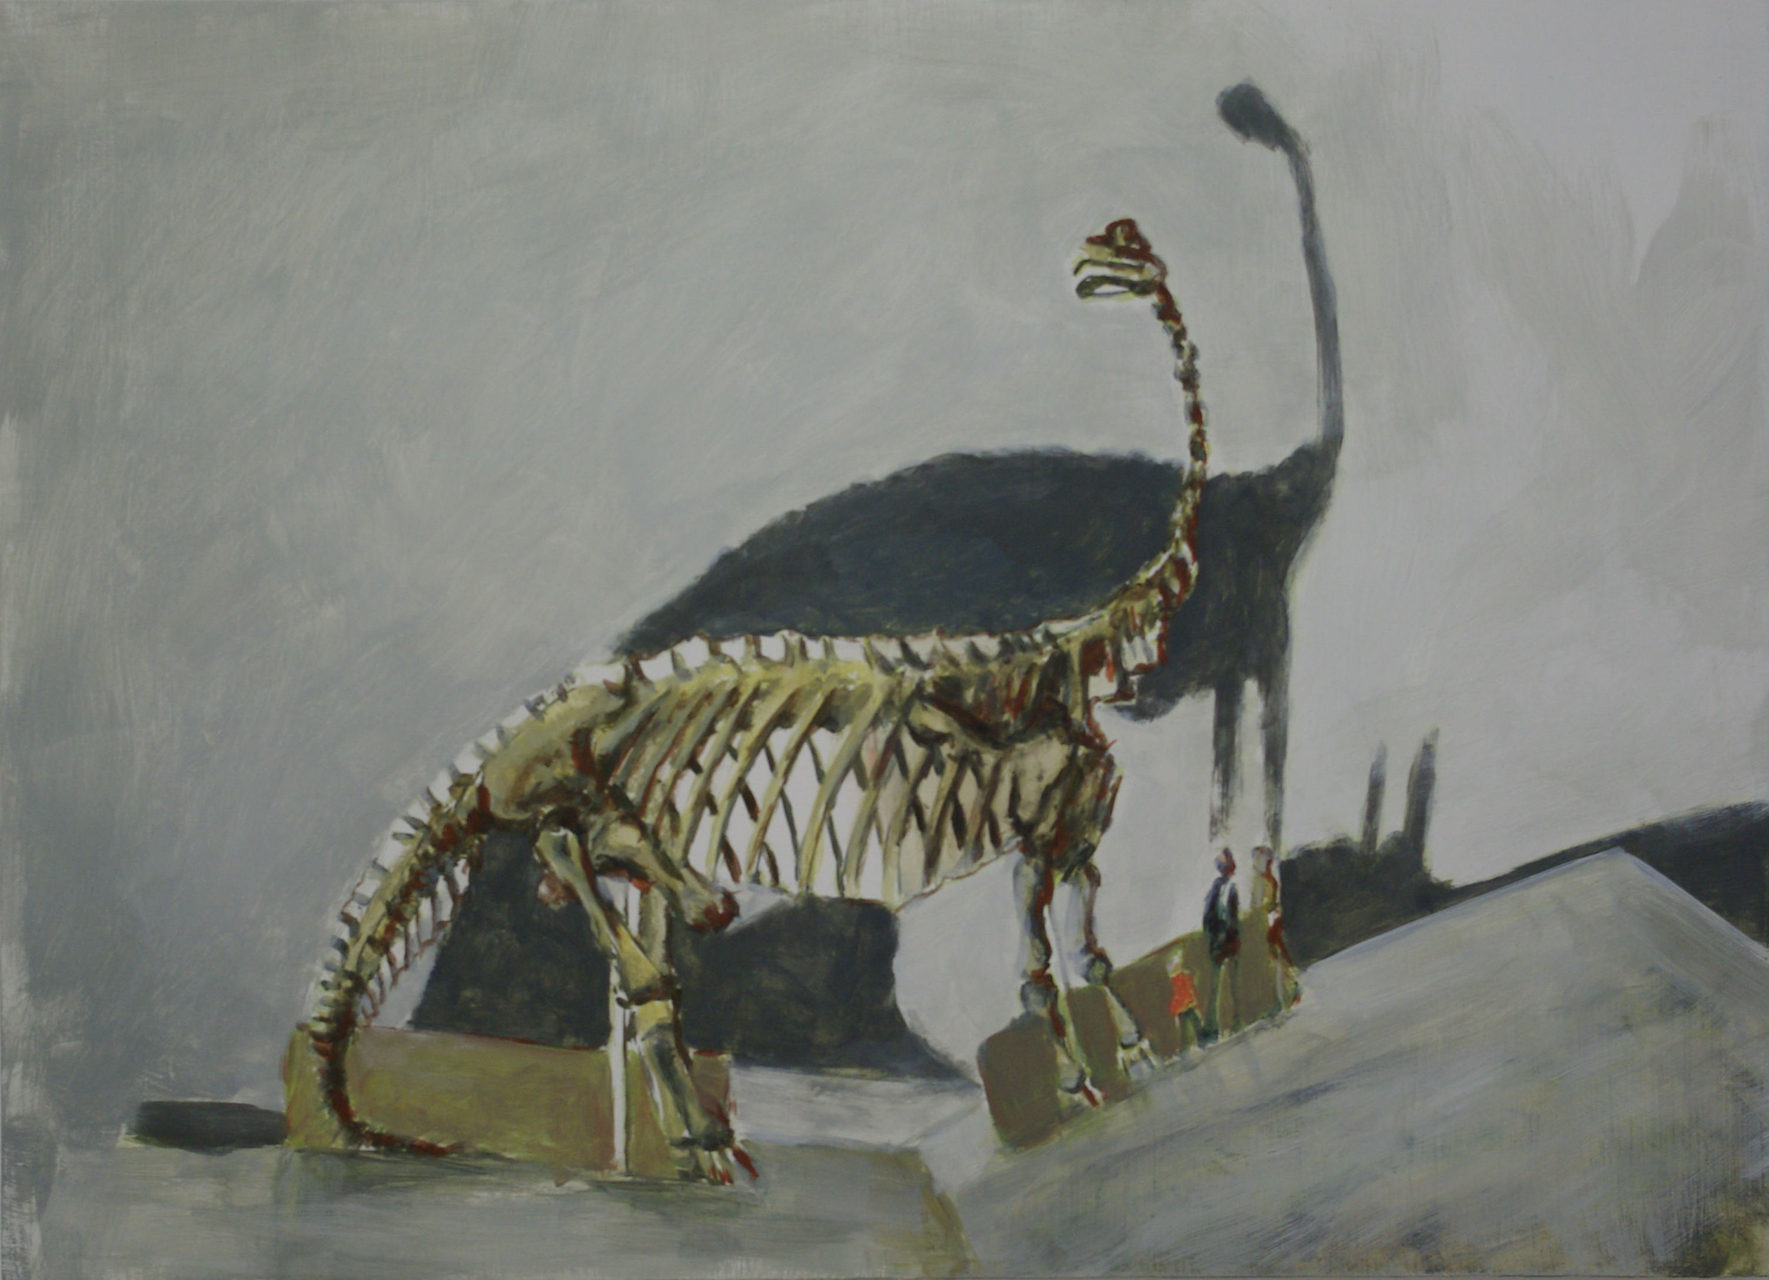 the paleontologist